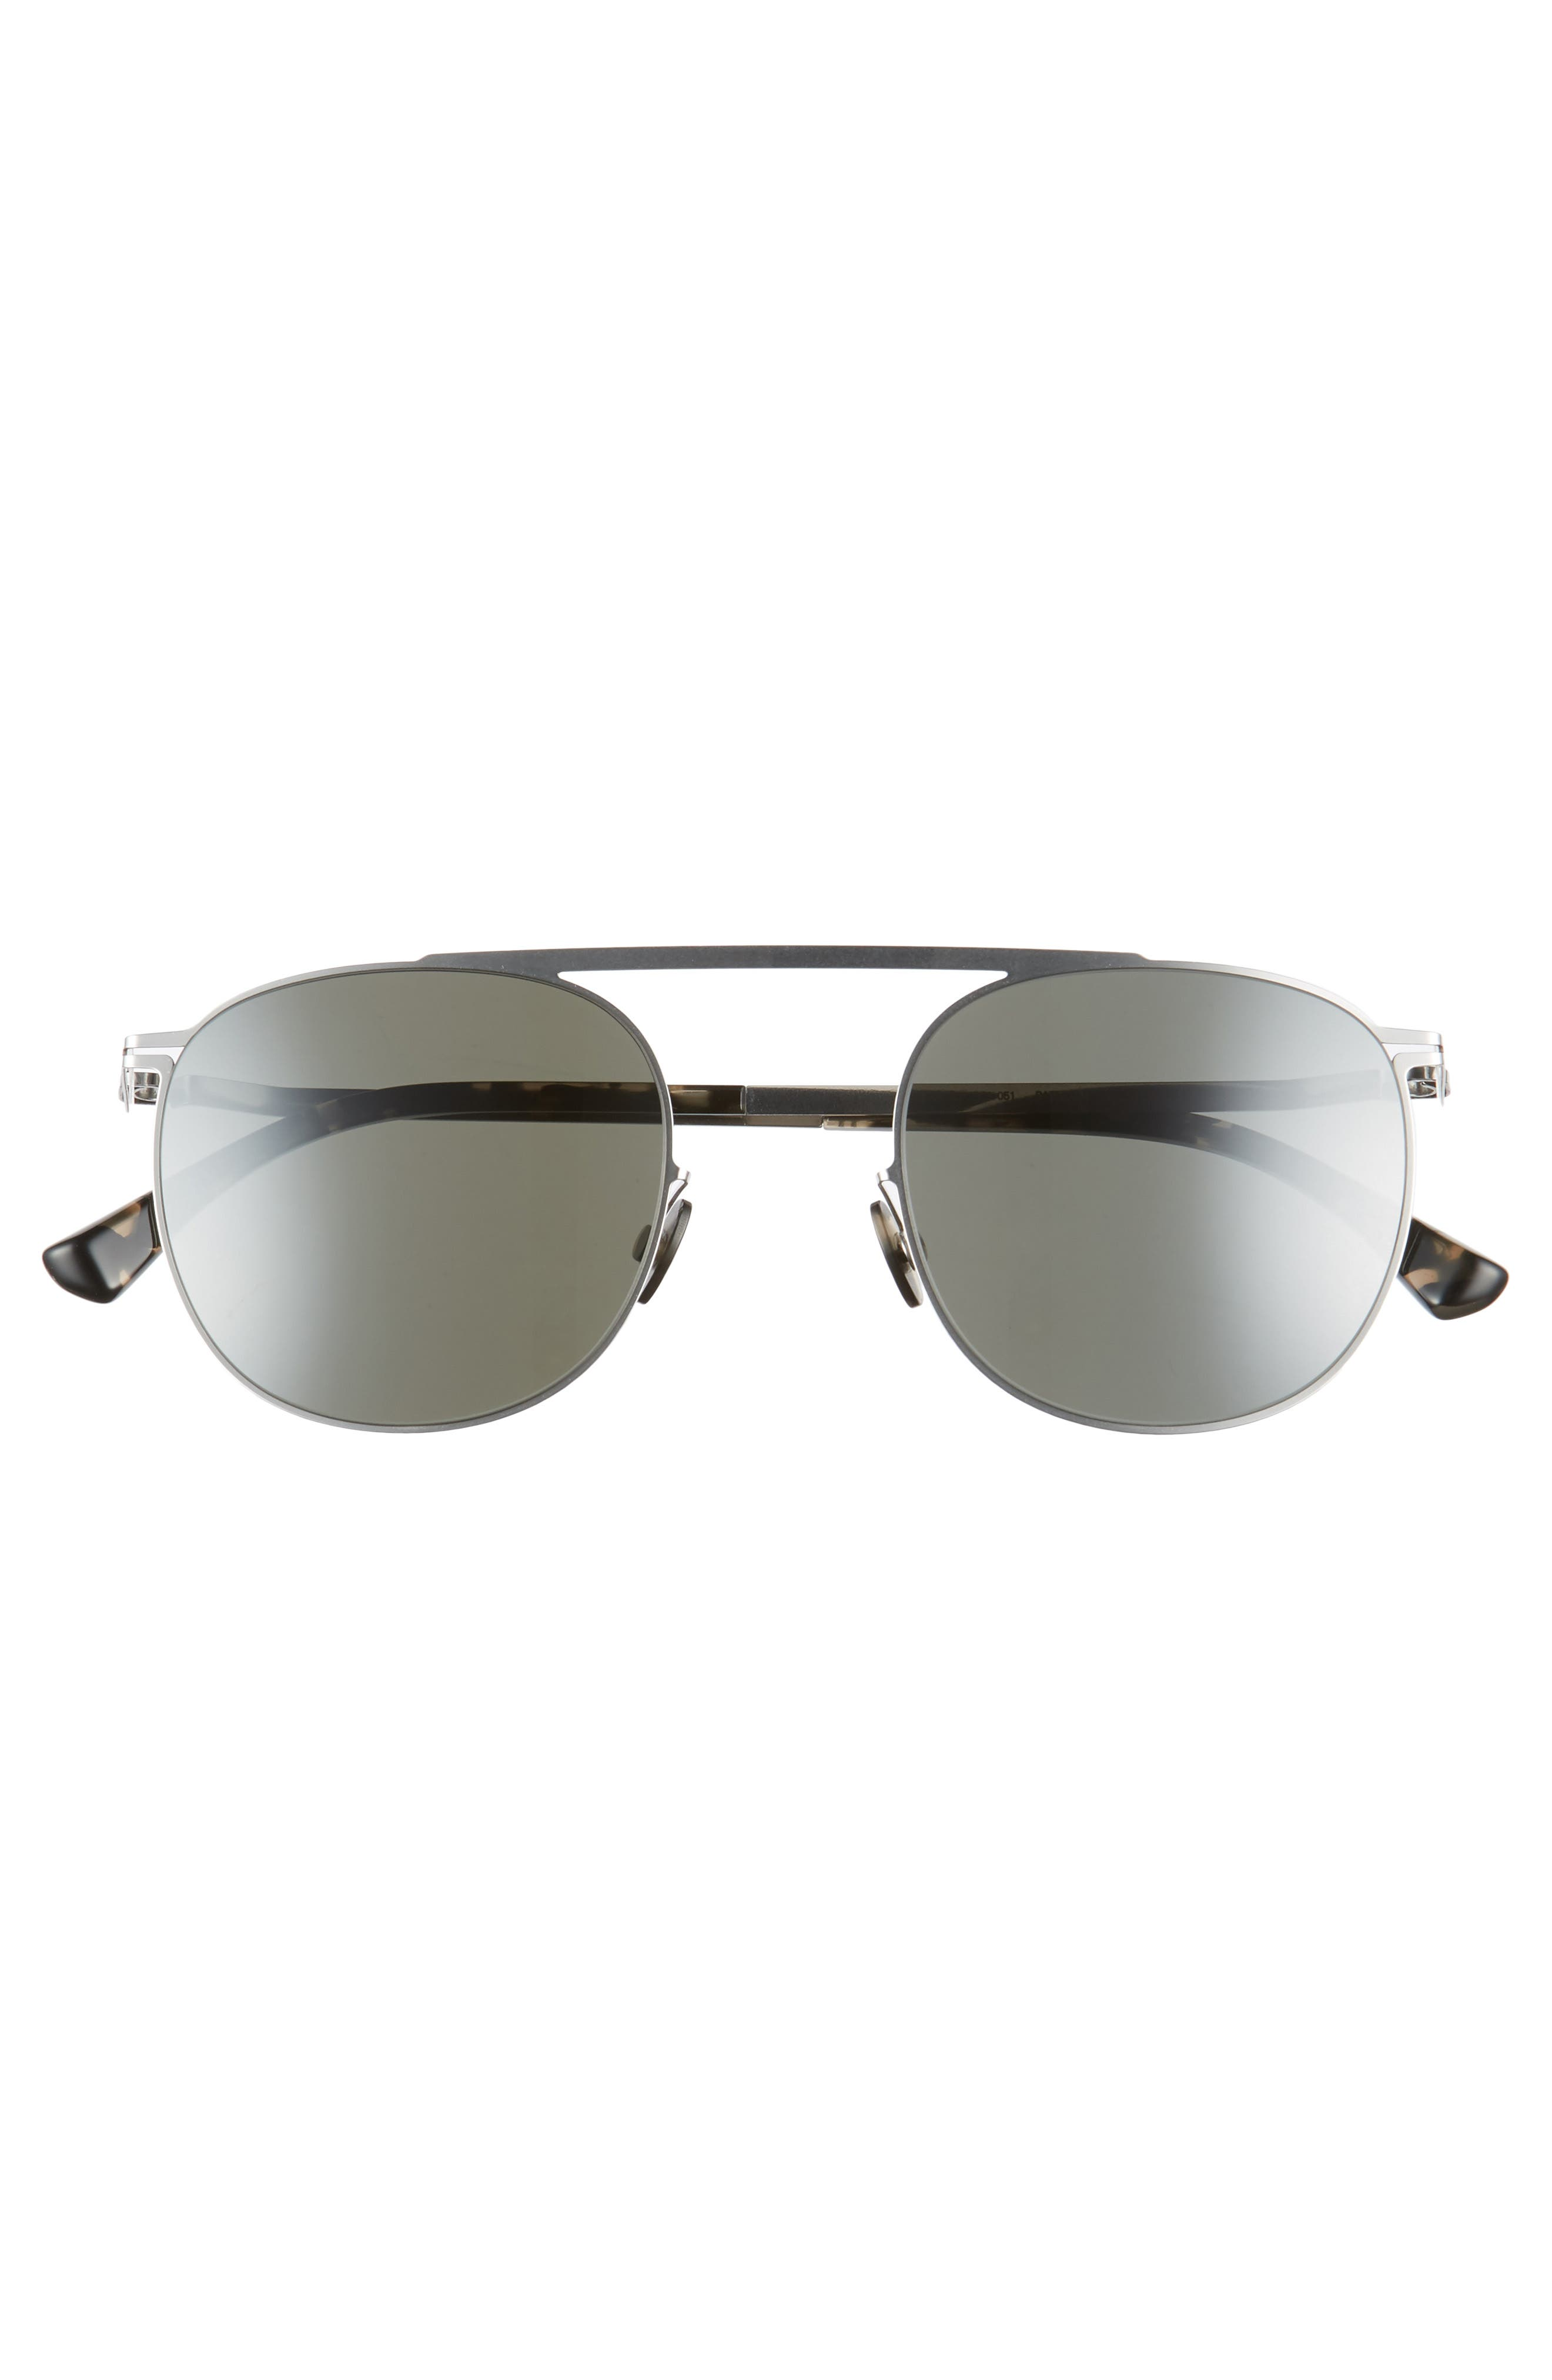 Erling 48mm Mirrored Sunglasses,                             Alternate thumbnail 2, color,                             Shiny Silver